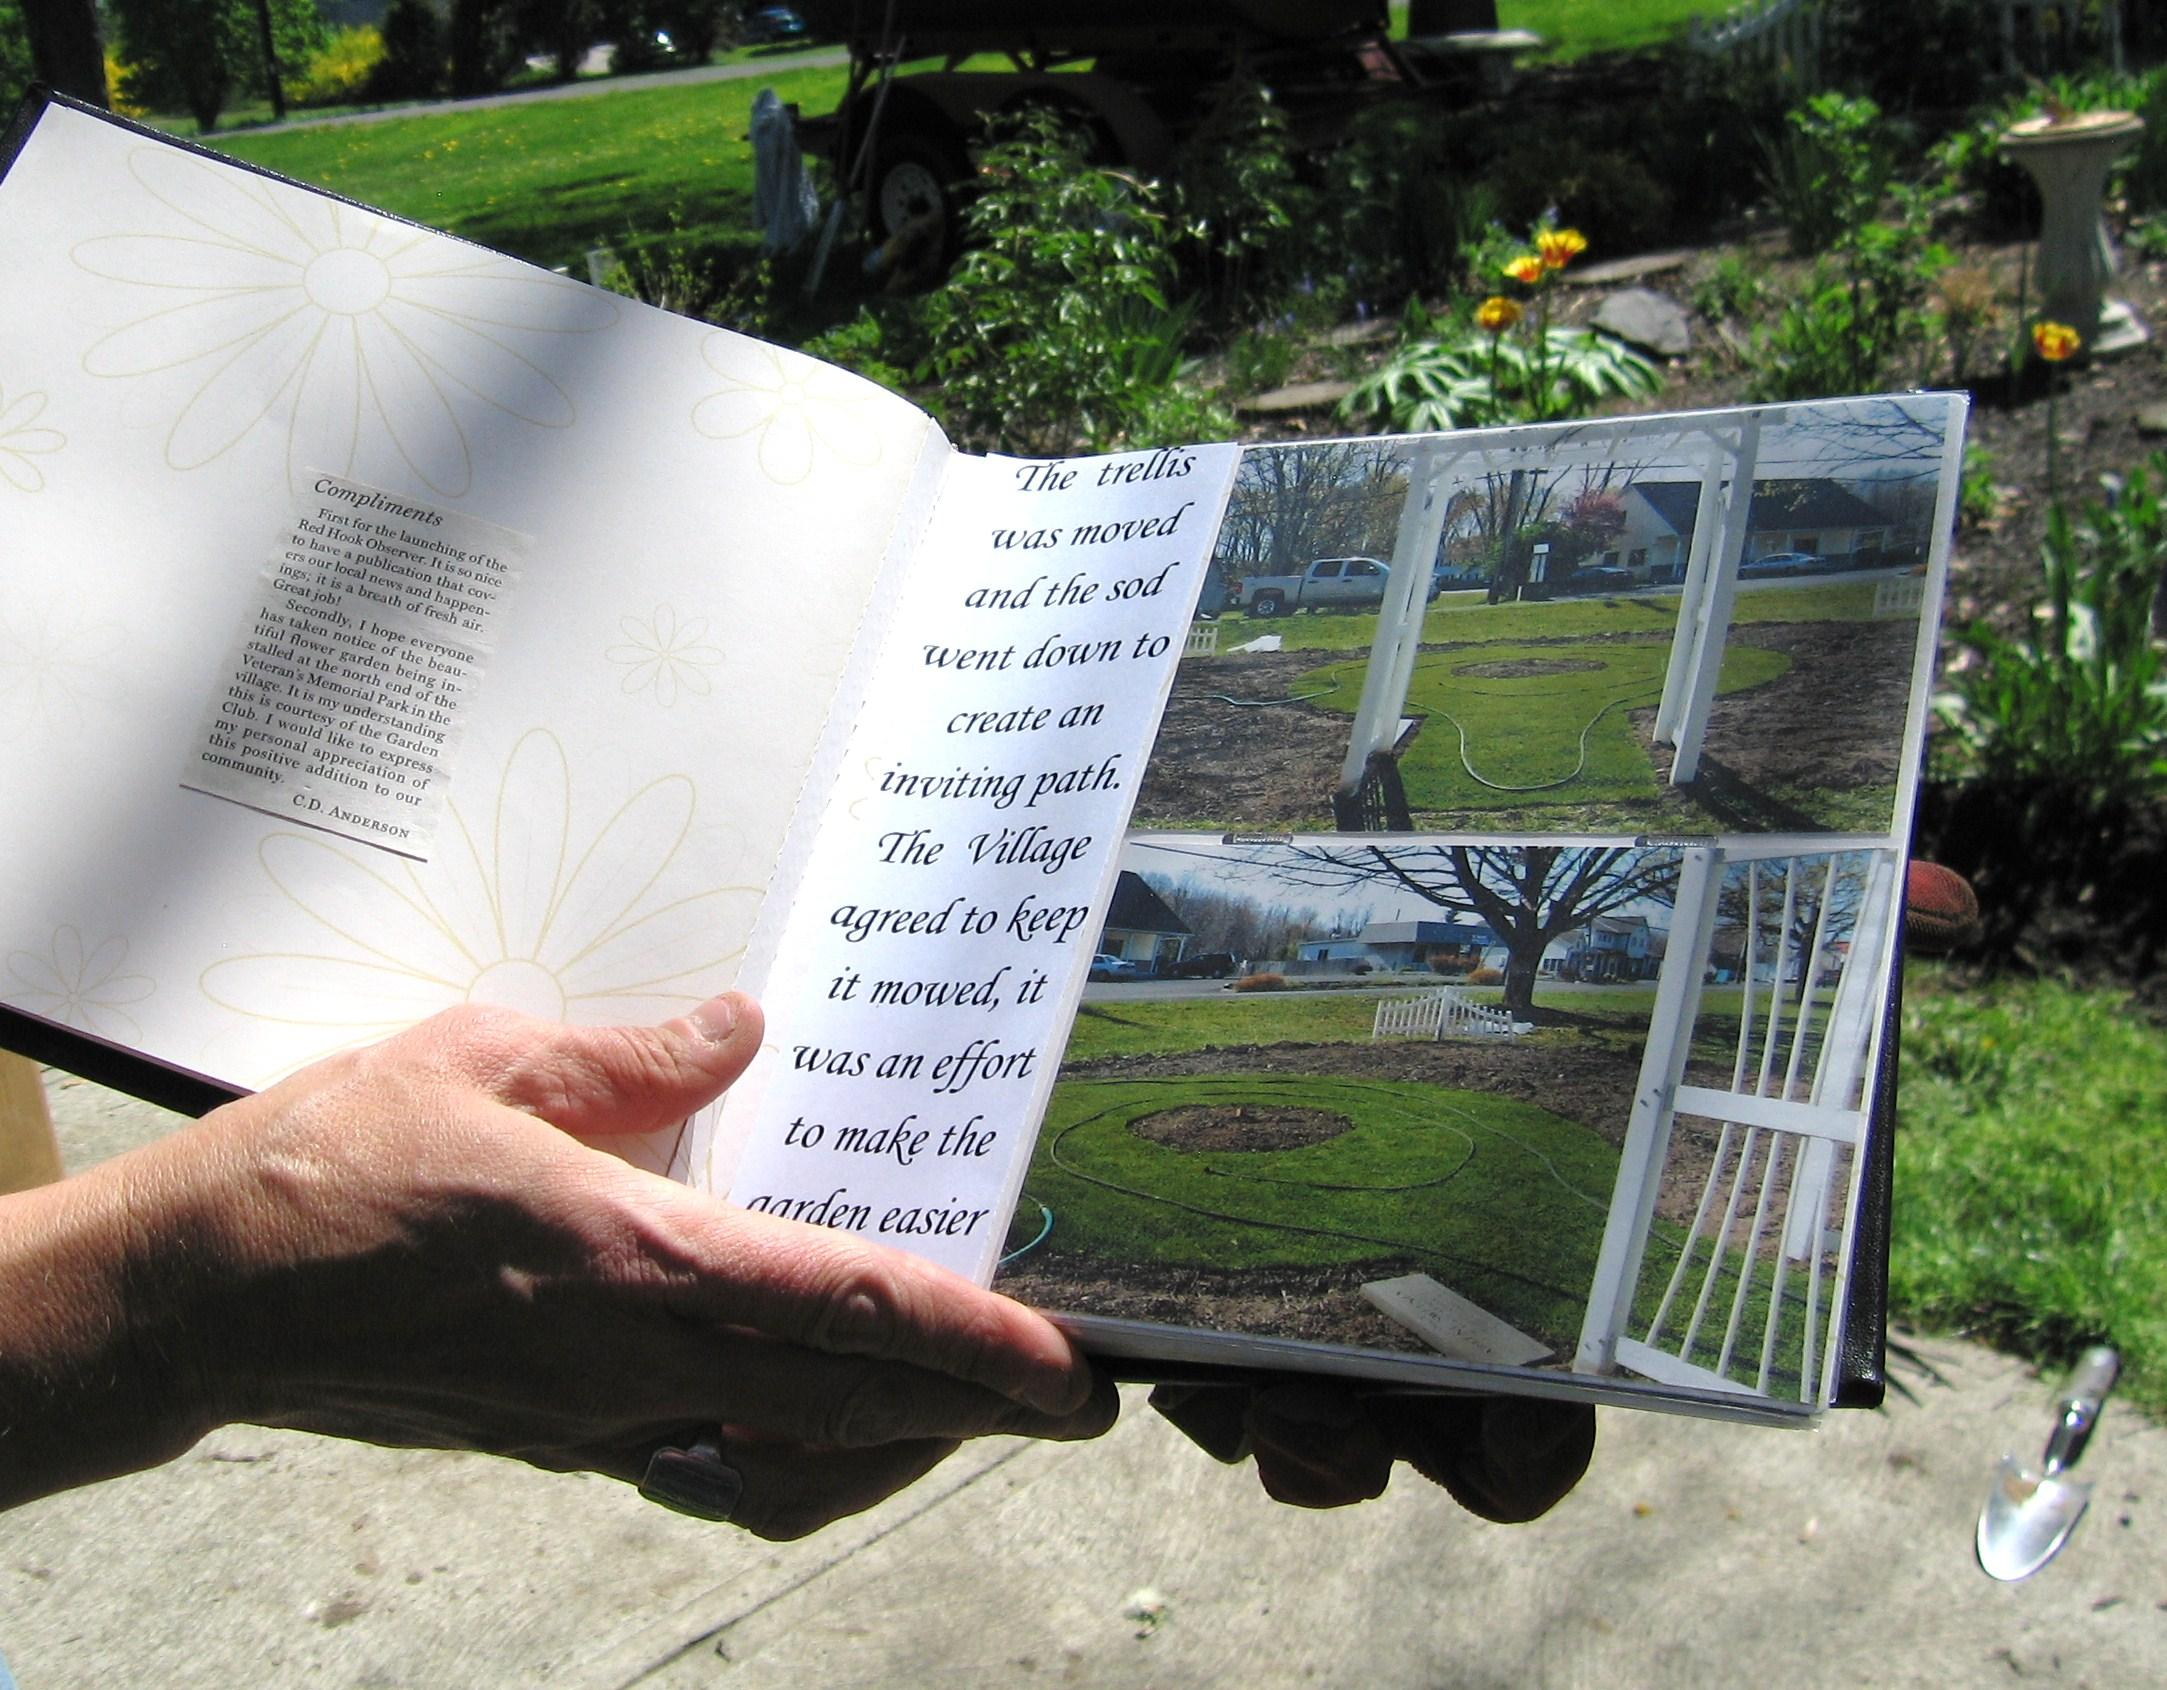 The club created a garden book documenting the changes and progress in the garden.